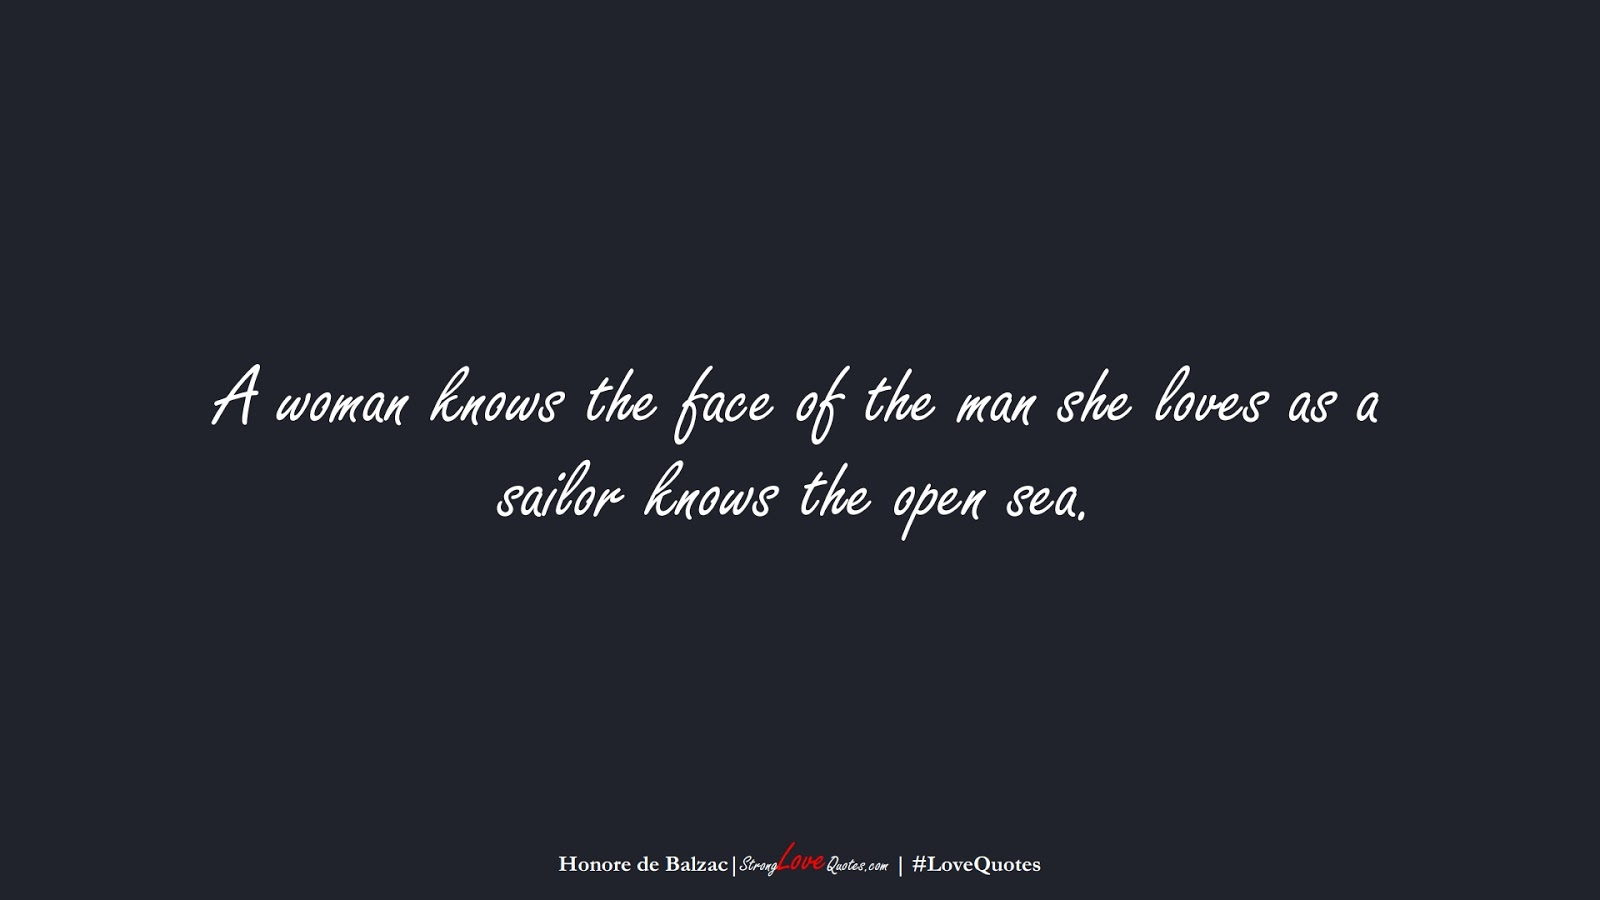 A woman knows the face of the man she loves as a sailor knows the open sea. (Honore de Balzac);  #LoveQuotes